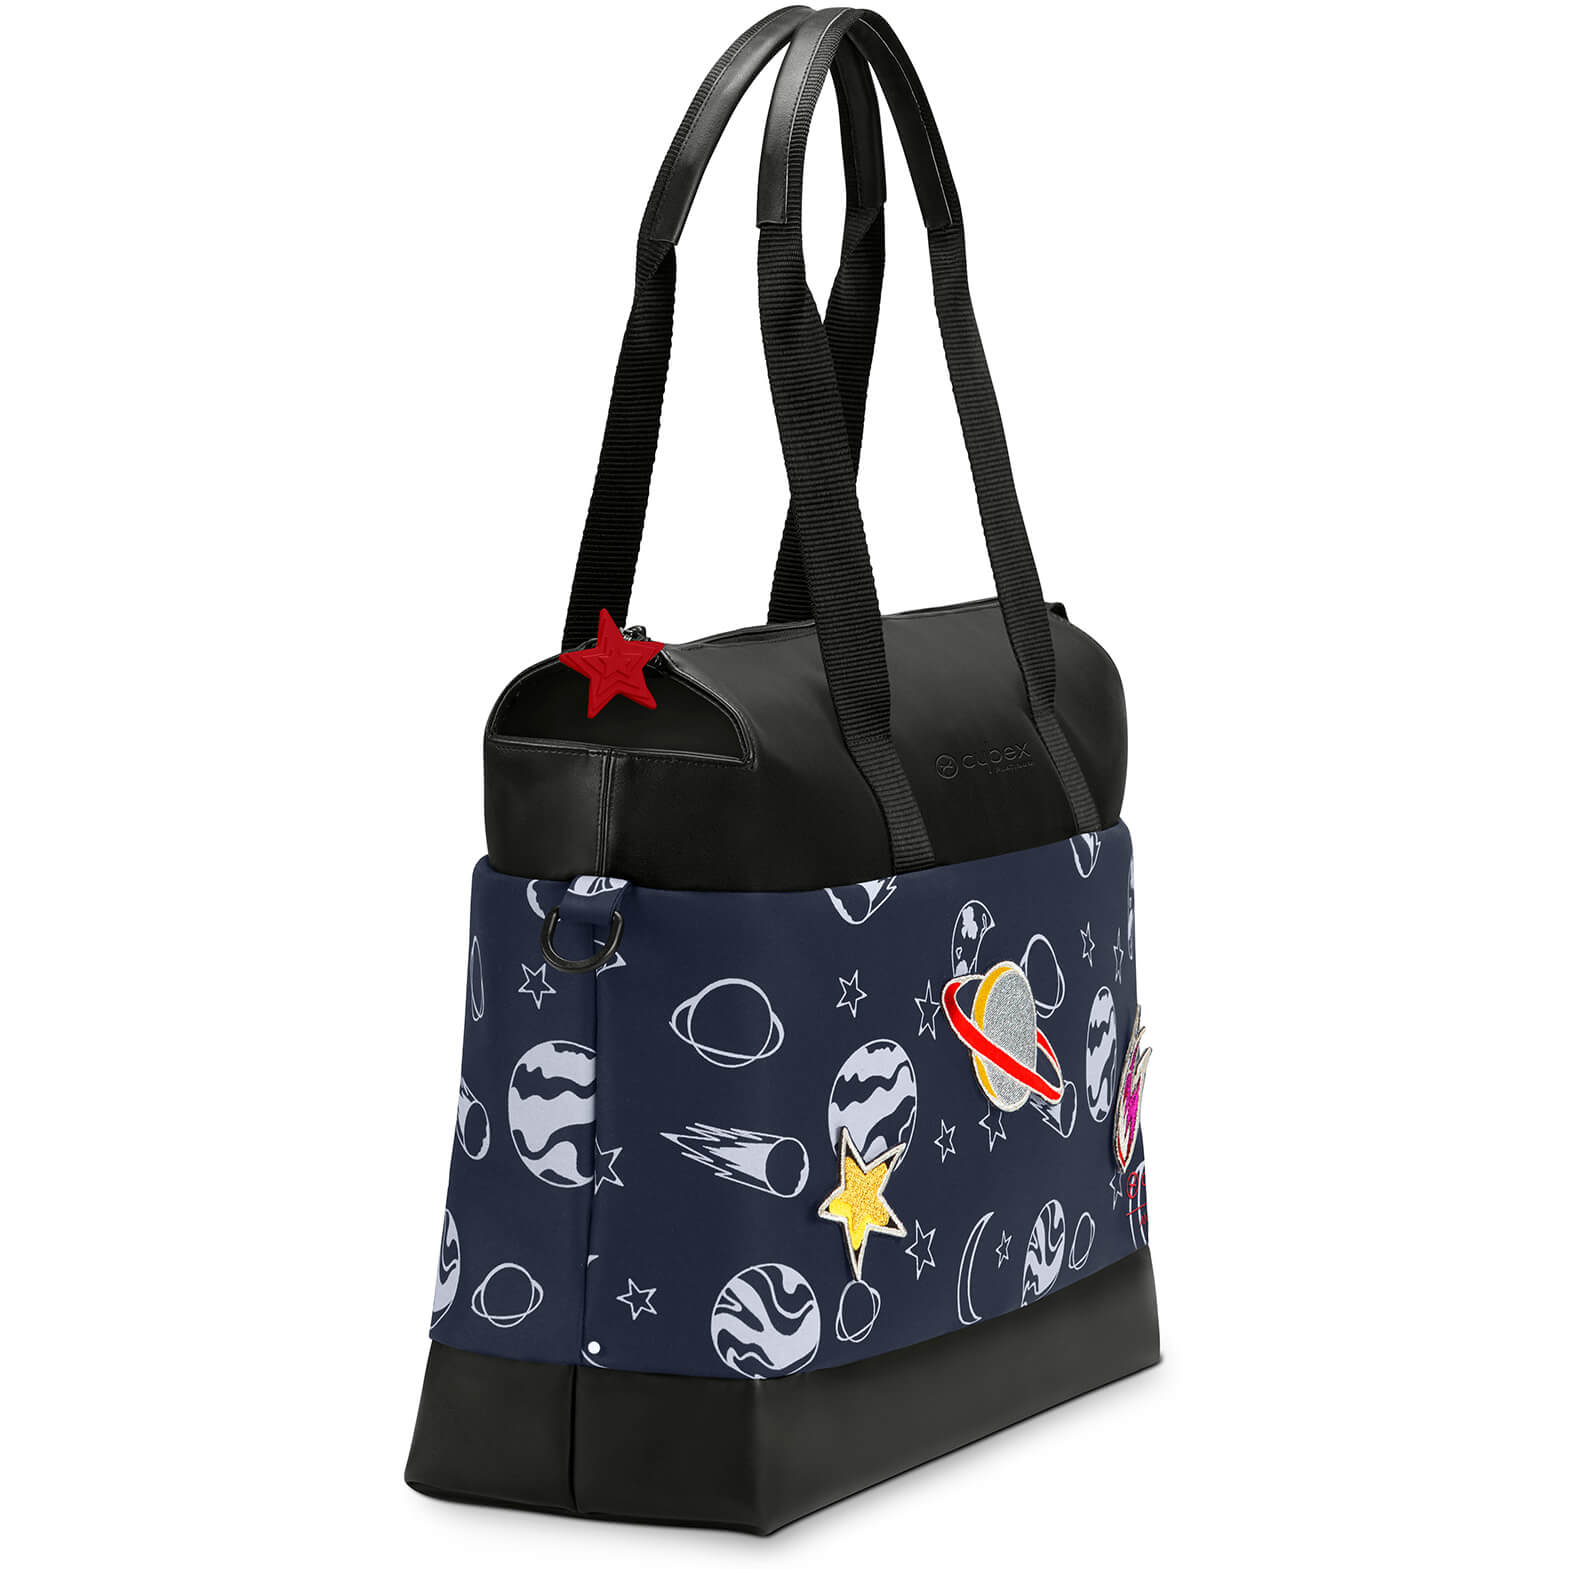 3ce36c51272c Cybex Priam Changing Bag - Space Rocket navy blue by Anna K